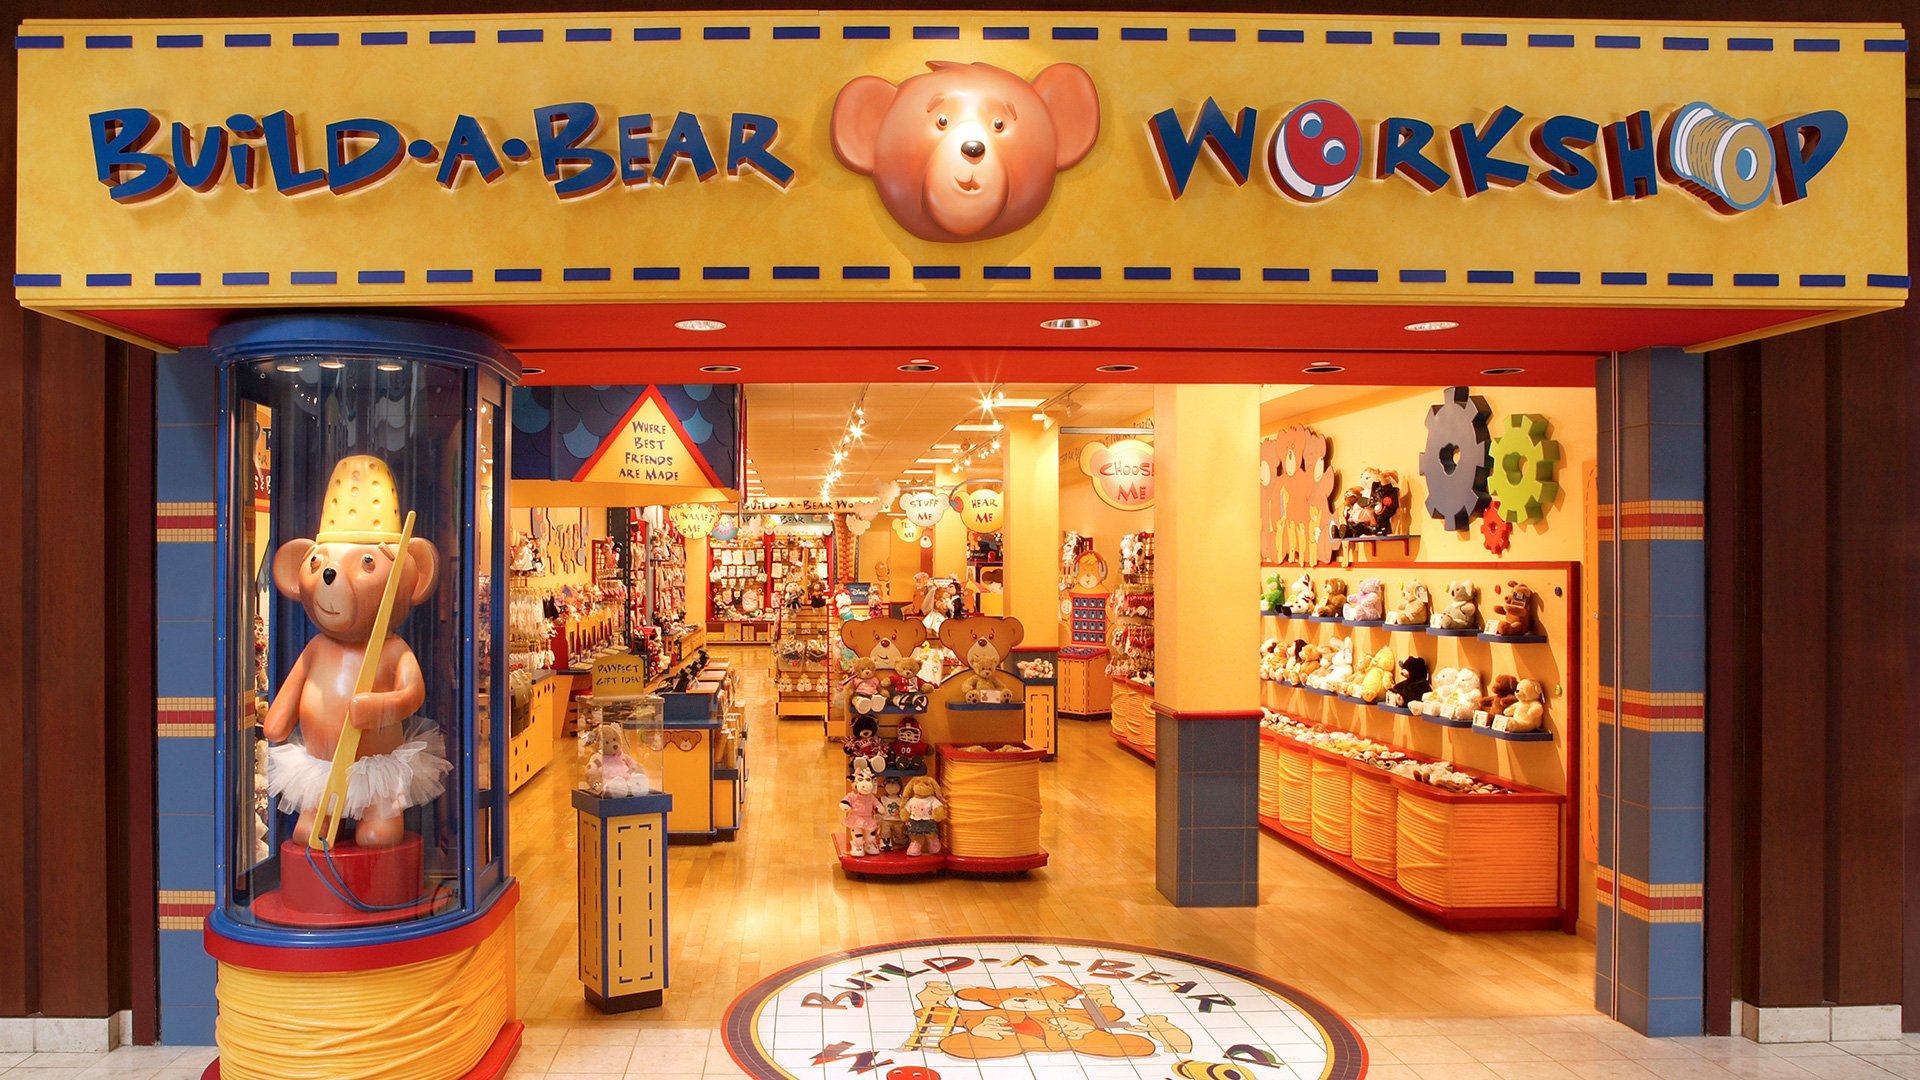 Five game franchises that need to collab with Build-A-Bear next screenshot